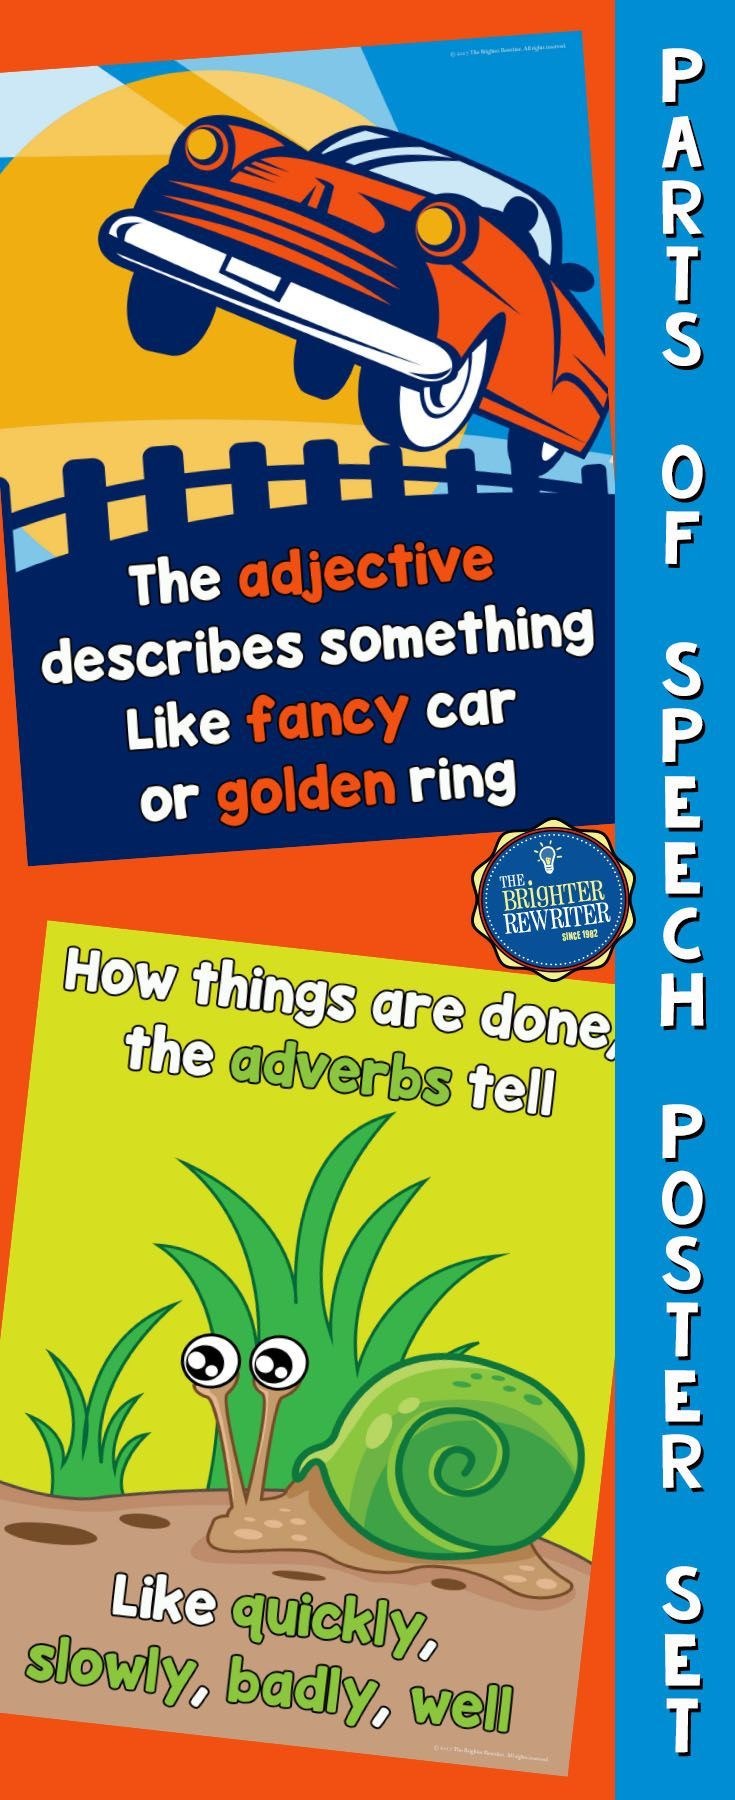 8 parts of speech are defined with rhymes and examples in a colorful poster set that includes nouns, pronouns, adjectives, verbs, adverbs, prepositions, conjunctions & interjections!